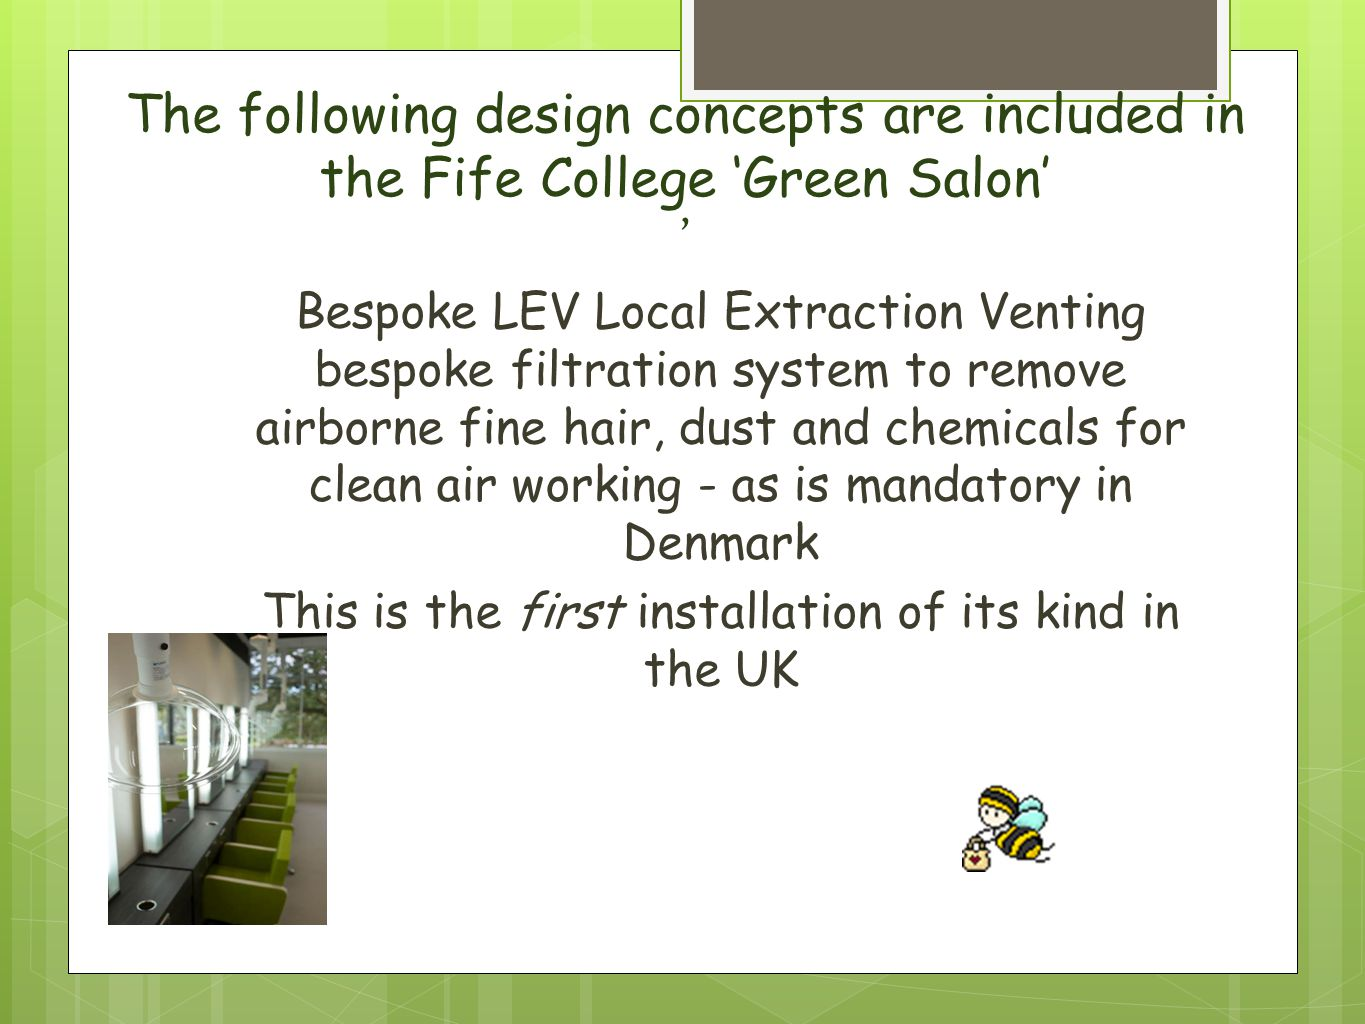 The following design concepts are included in the Fife College 'Green Salon' ' Bespoke LEV Local Extraction Venting bespoke filtration system to remove airborne fine hair, dust and chemicals for clean air working - as is mandatory in Denmark This is the first installation of its kind in the UK